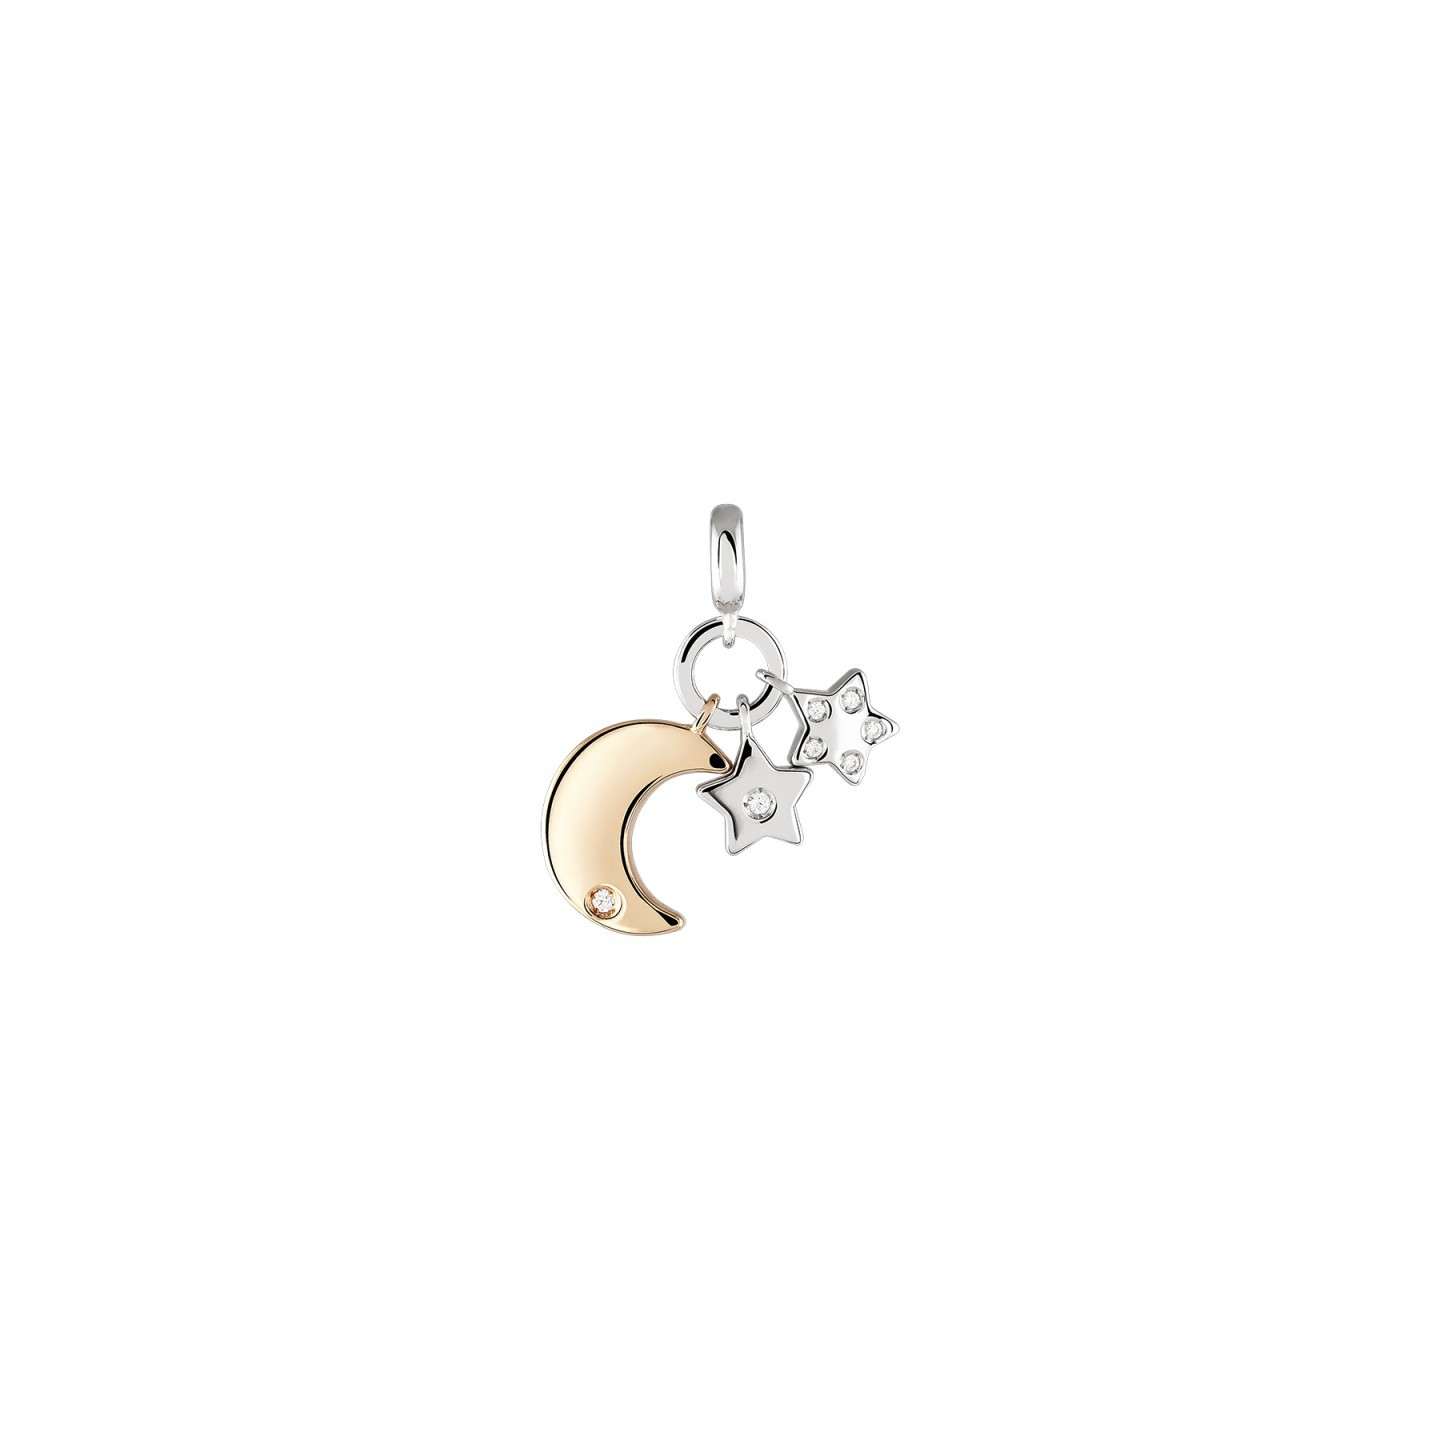 Charm BOW HAPPY Love Stories Moon & Stars